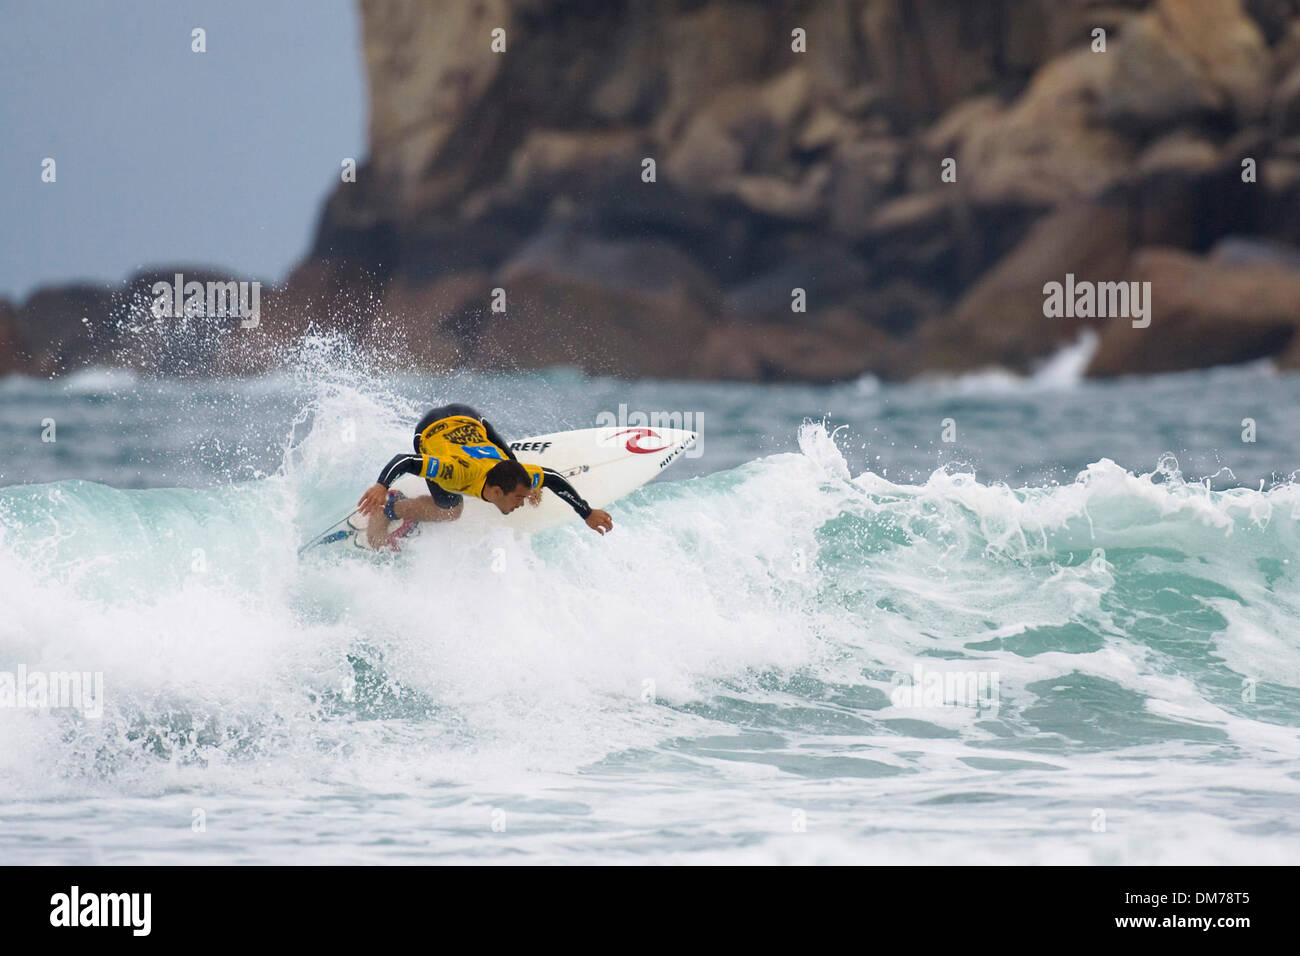 Nov 06, 2005; Florianopolis, Santa Catarina, Round one of the Nova Schin Festival Presented by Billabong at Imbituba, Brazil. The Nova Schin Brazil is the tenth of 12 events on the 2005 Foster's Men's ASP World Championship Tour (WCT) and features the top 45 surfers in world and three wild card surfers. Mandatory Credit: Photo by Karen Wilson/ZUMA Press. (©) Copyright 2005 by Karen - Stock Image